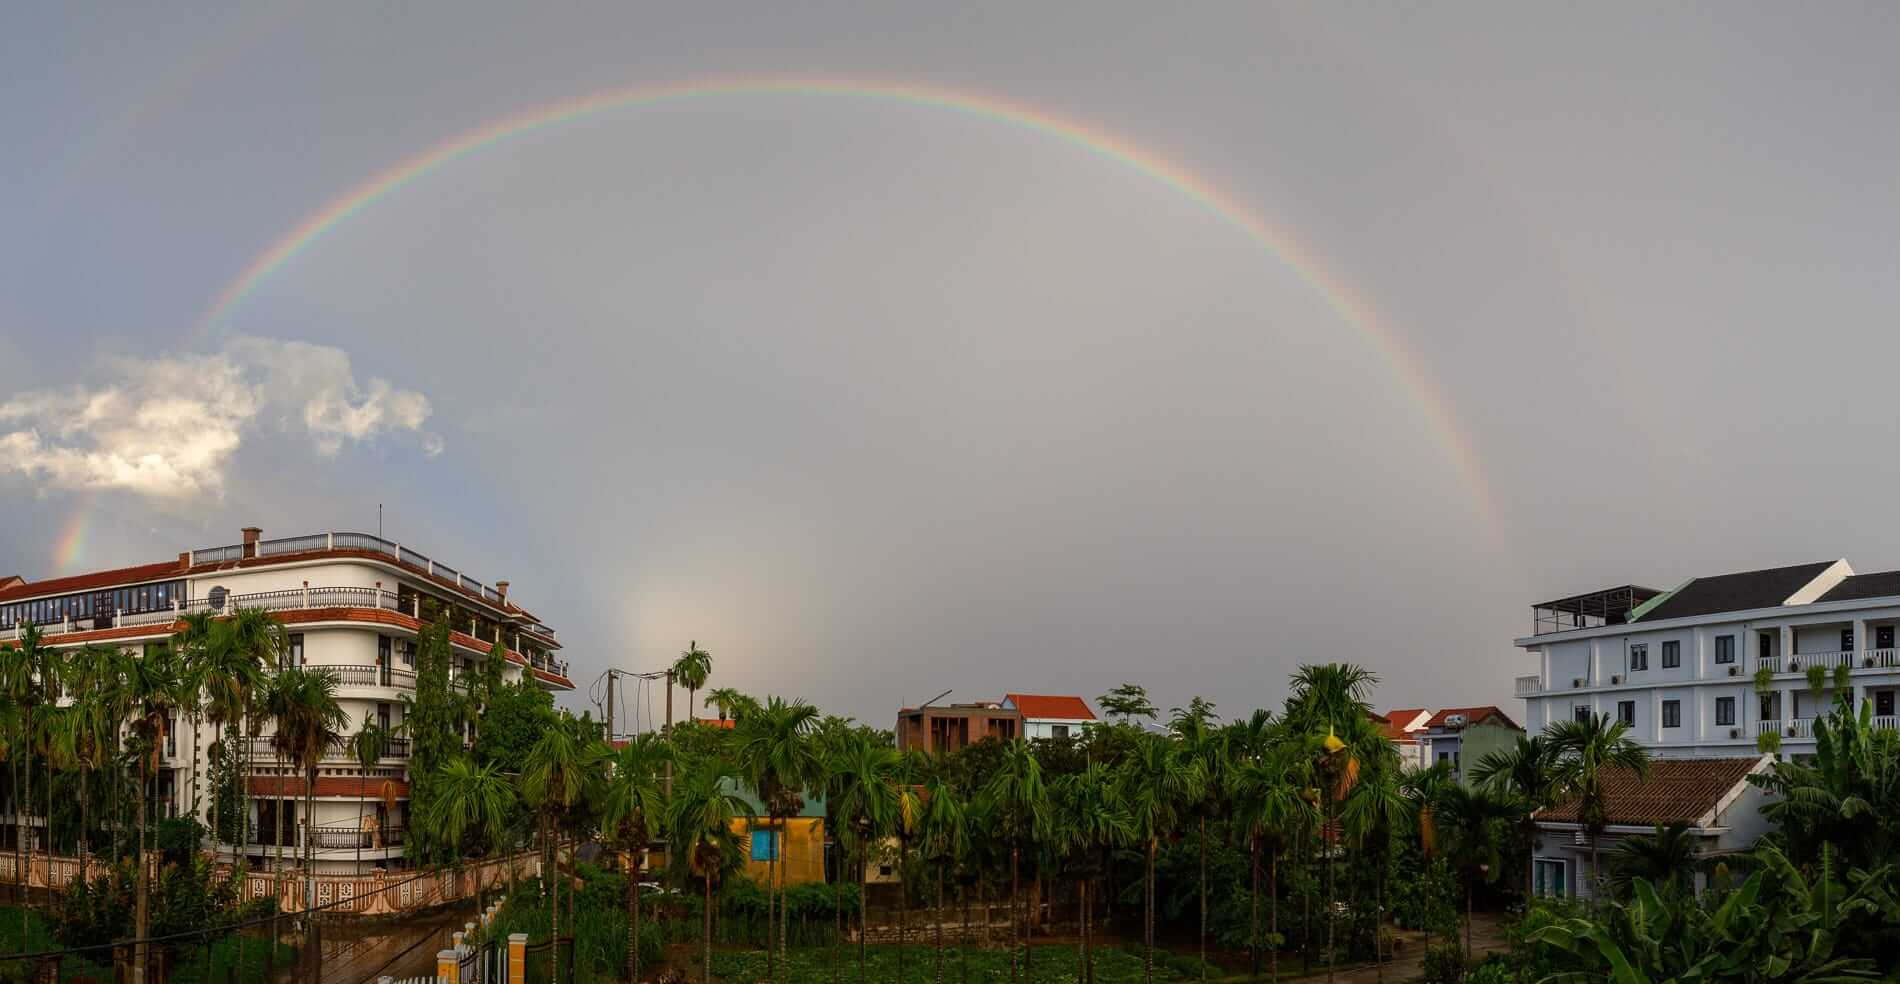 Rainbow in Hoi An